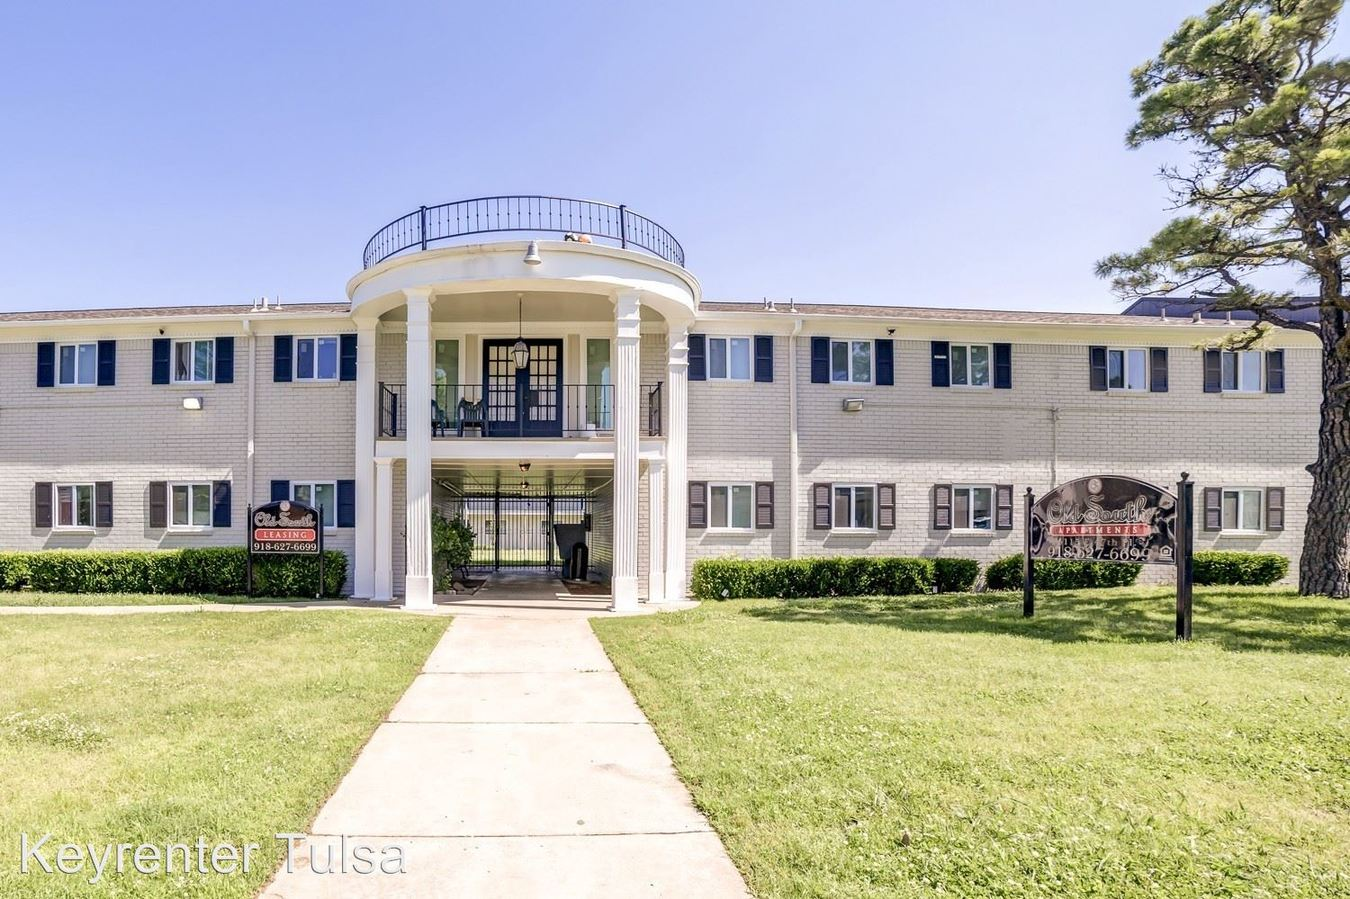 2 Bedrooms 1 Bathroom Apartment for rent at Old South Apartments in Tulsa, OK